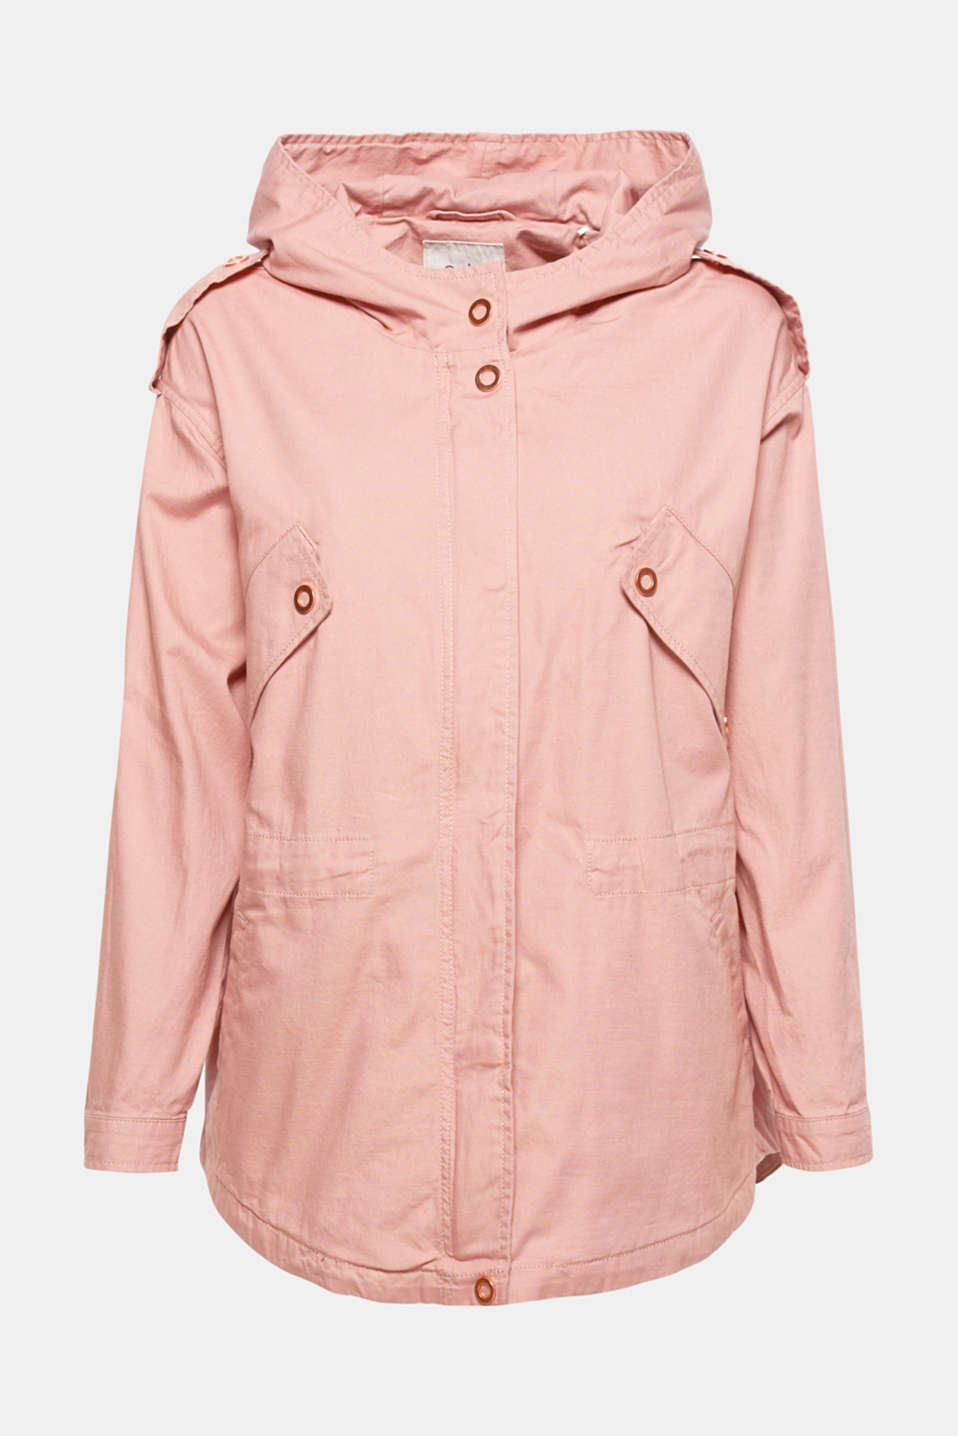 This short cotton parka with a trendy oversized silhouette and adjustable waist is incredibly comfortable and a stylish piece at the same time. Red gold coloured metal details give the piece a stylish finish.